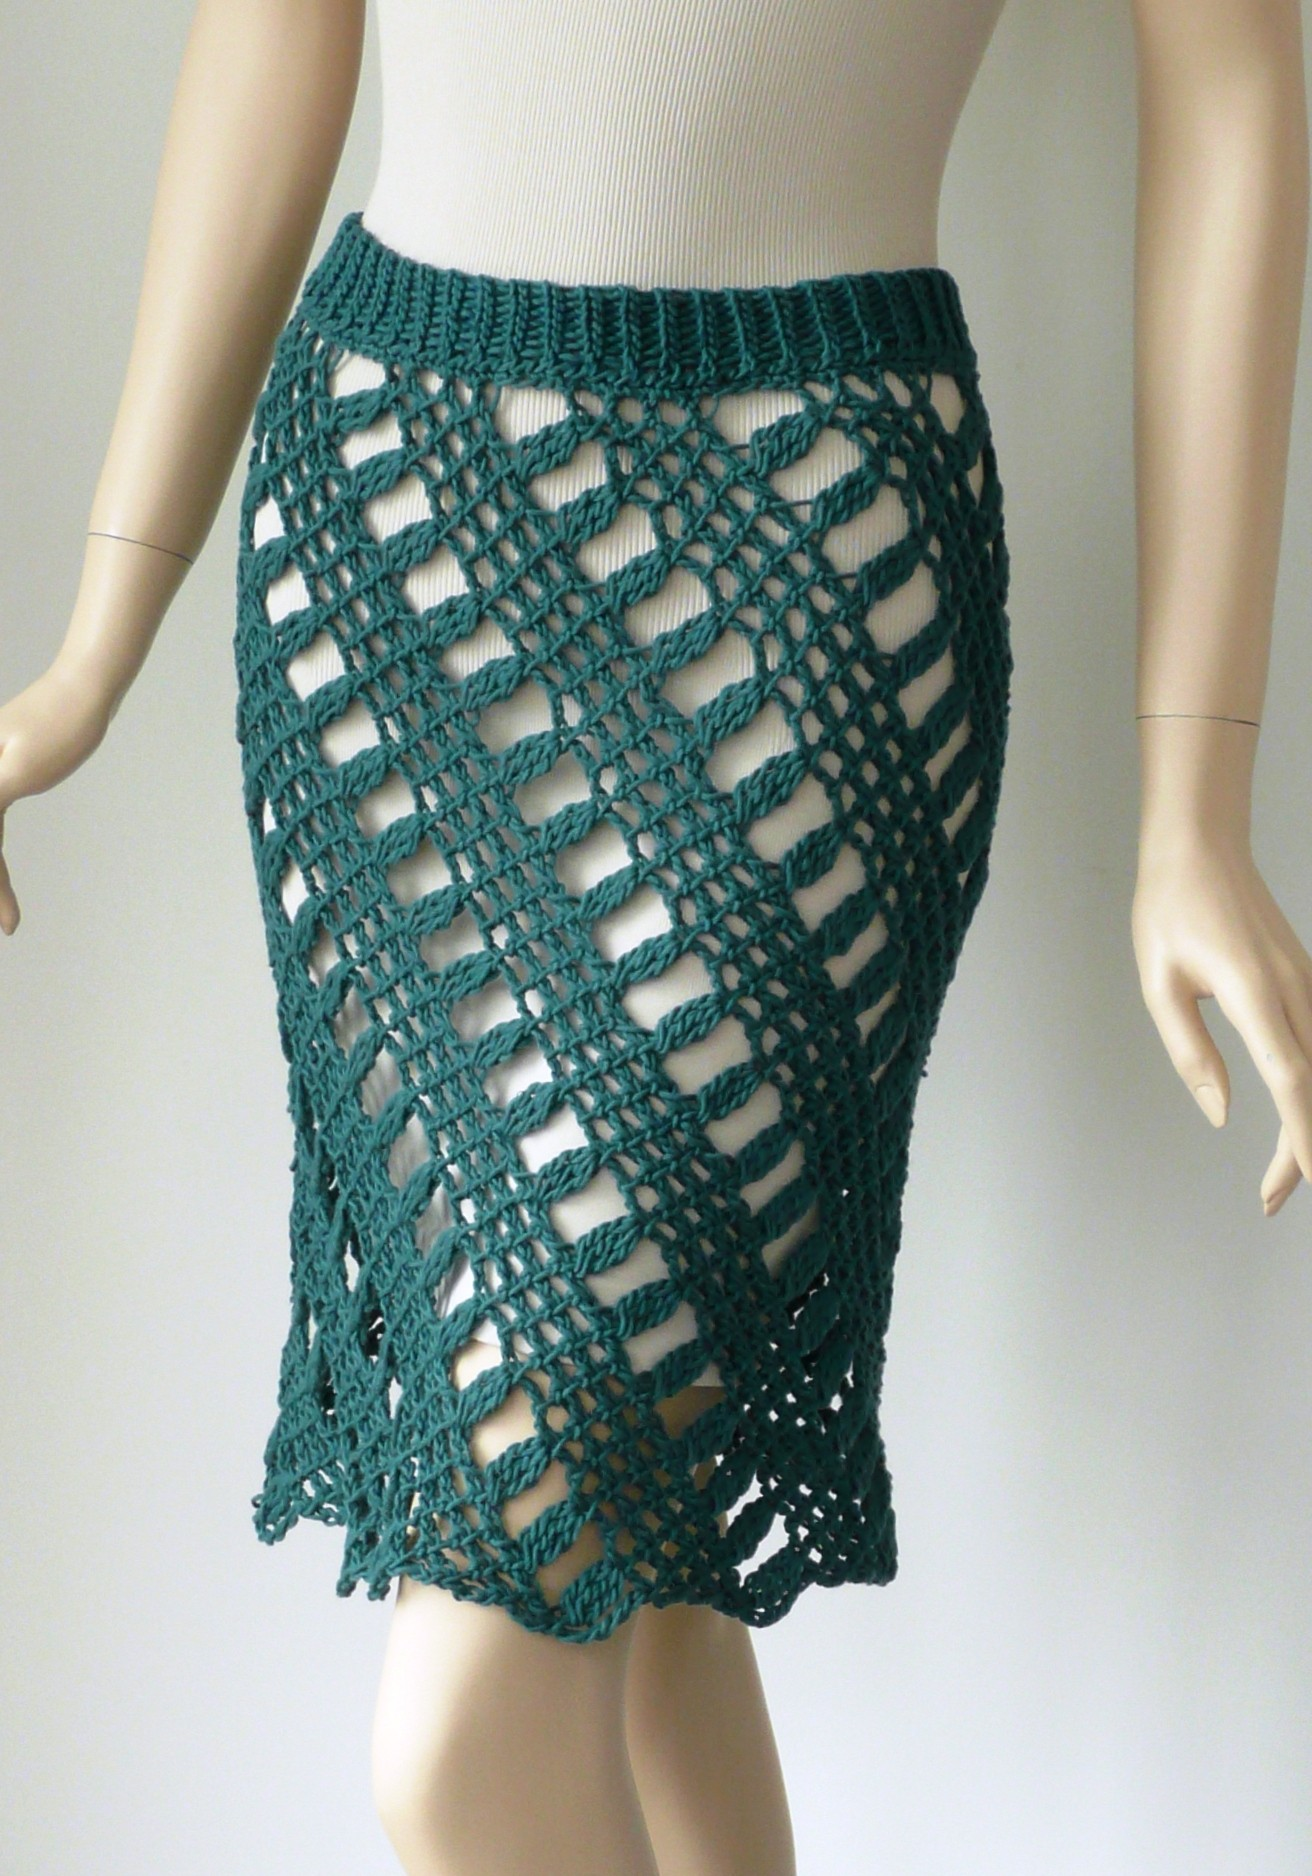 Crochet Patterns Skirt : ... 2013 at 1312 ? 1876 in The Crocheted Skirt: Fashion Fact or Fantasy